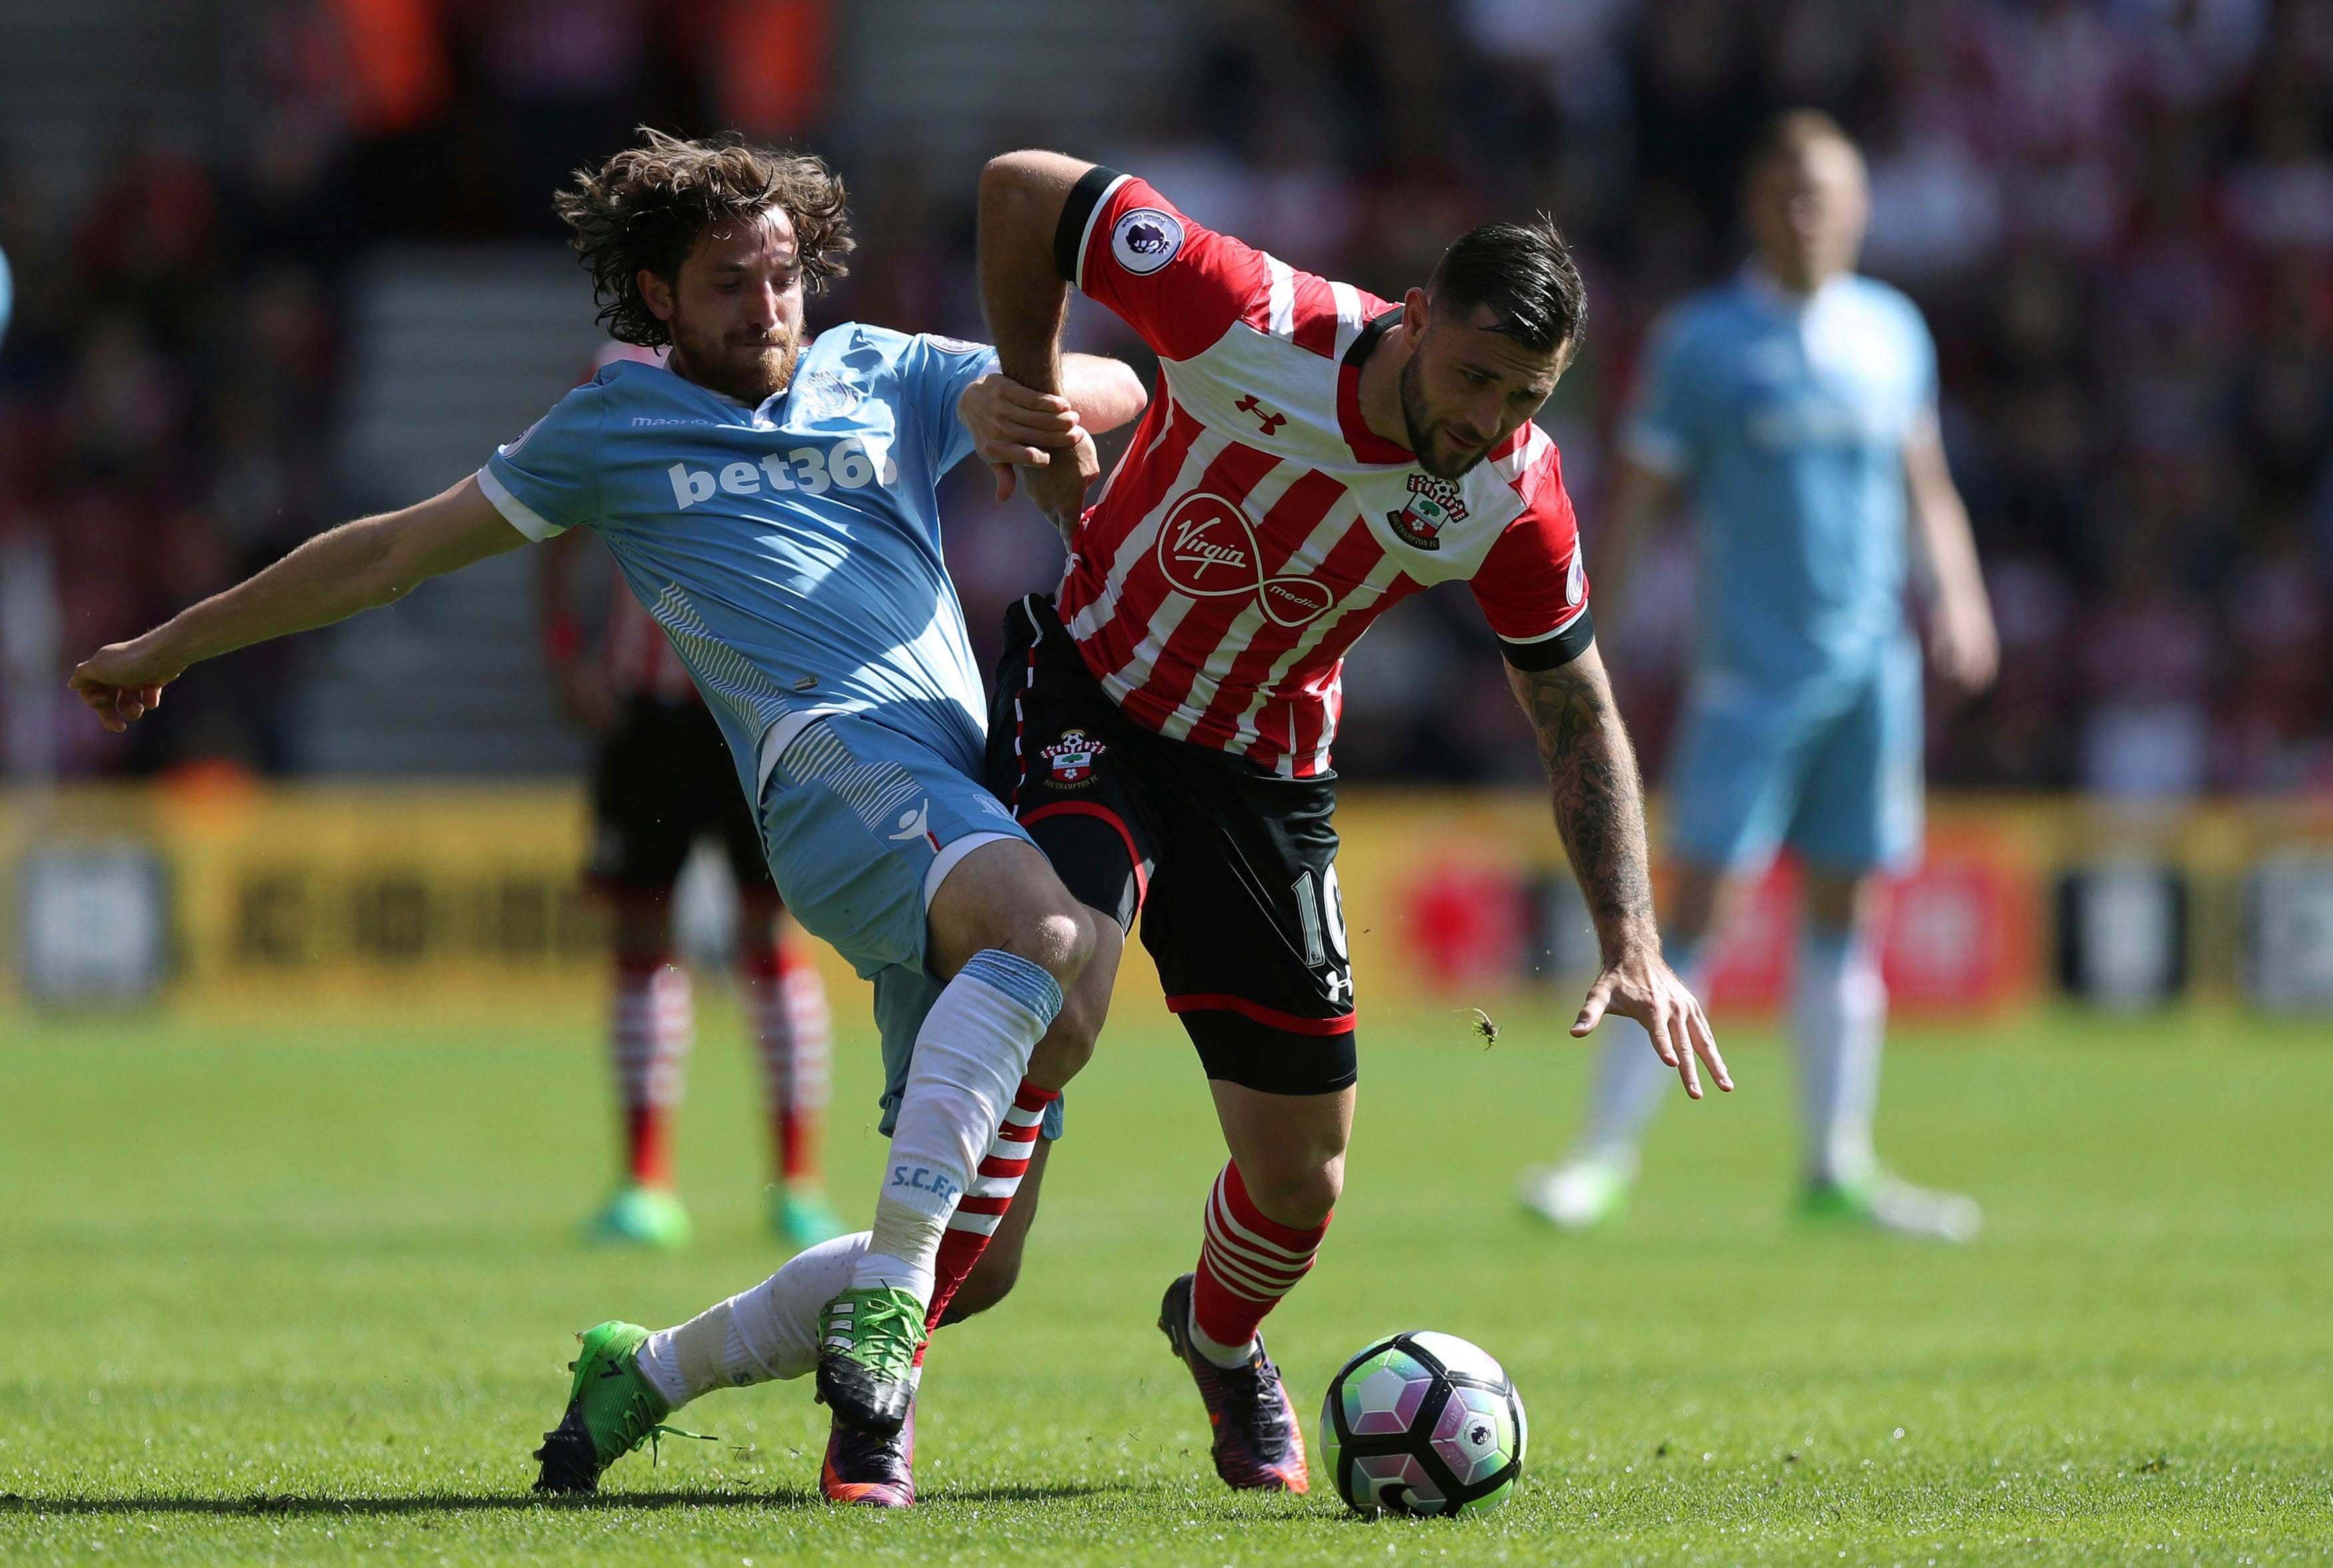 Puel under pressure as Southampton ends season with 1-0 loss